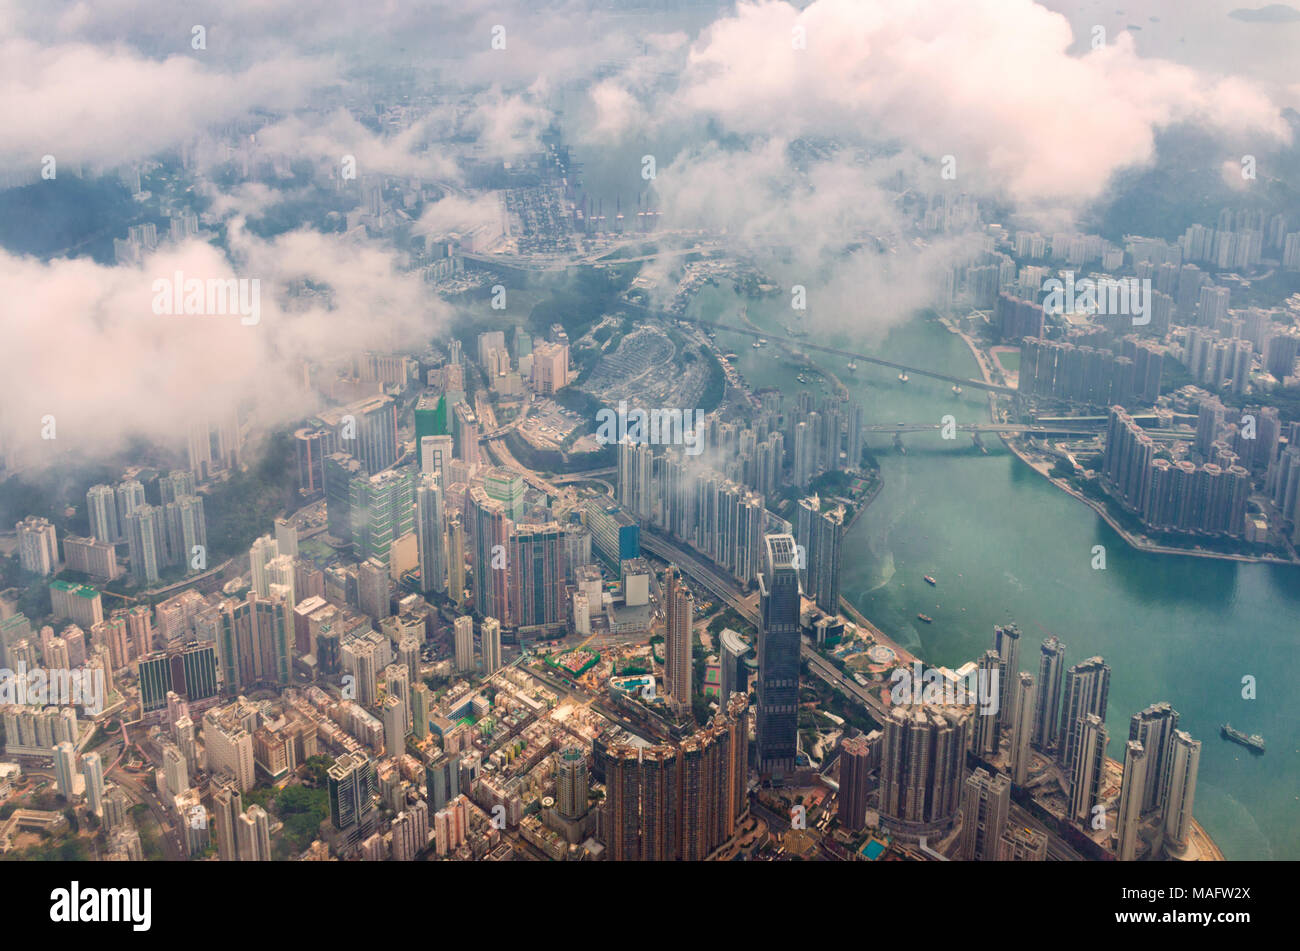 Aerial view through the clouds to a large metropolis city of Hong Kong. - Stock Image